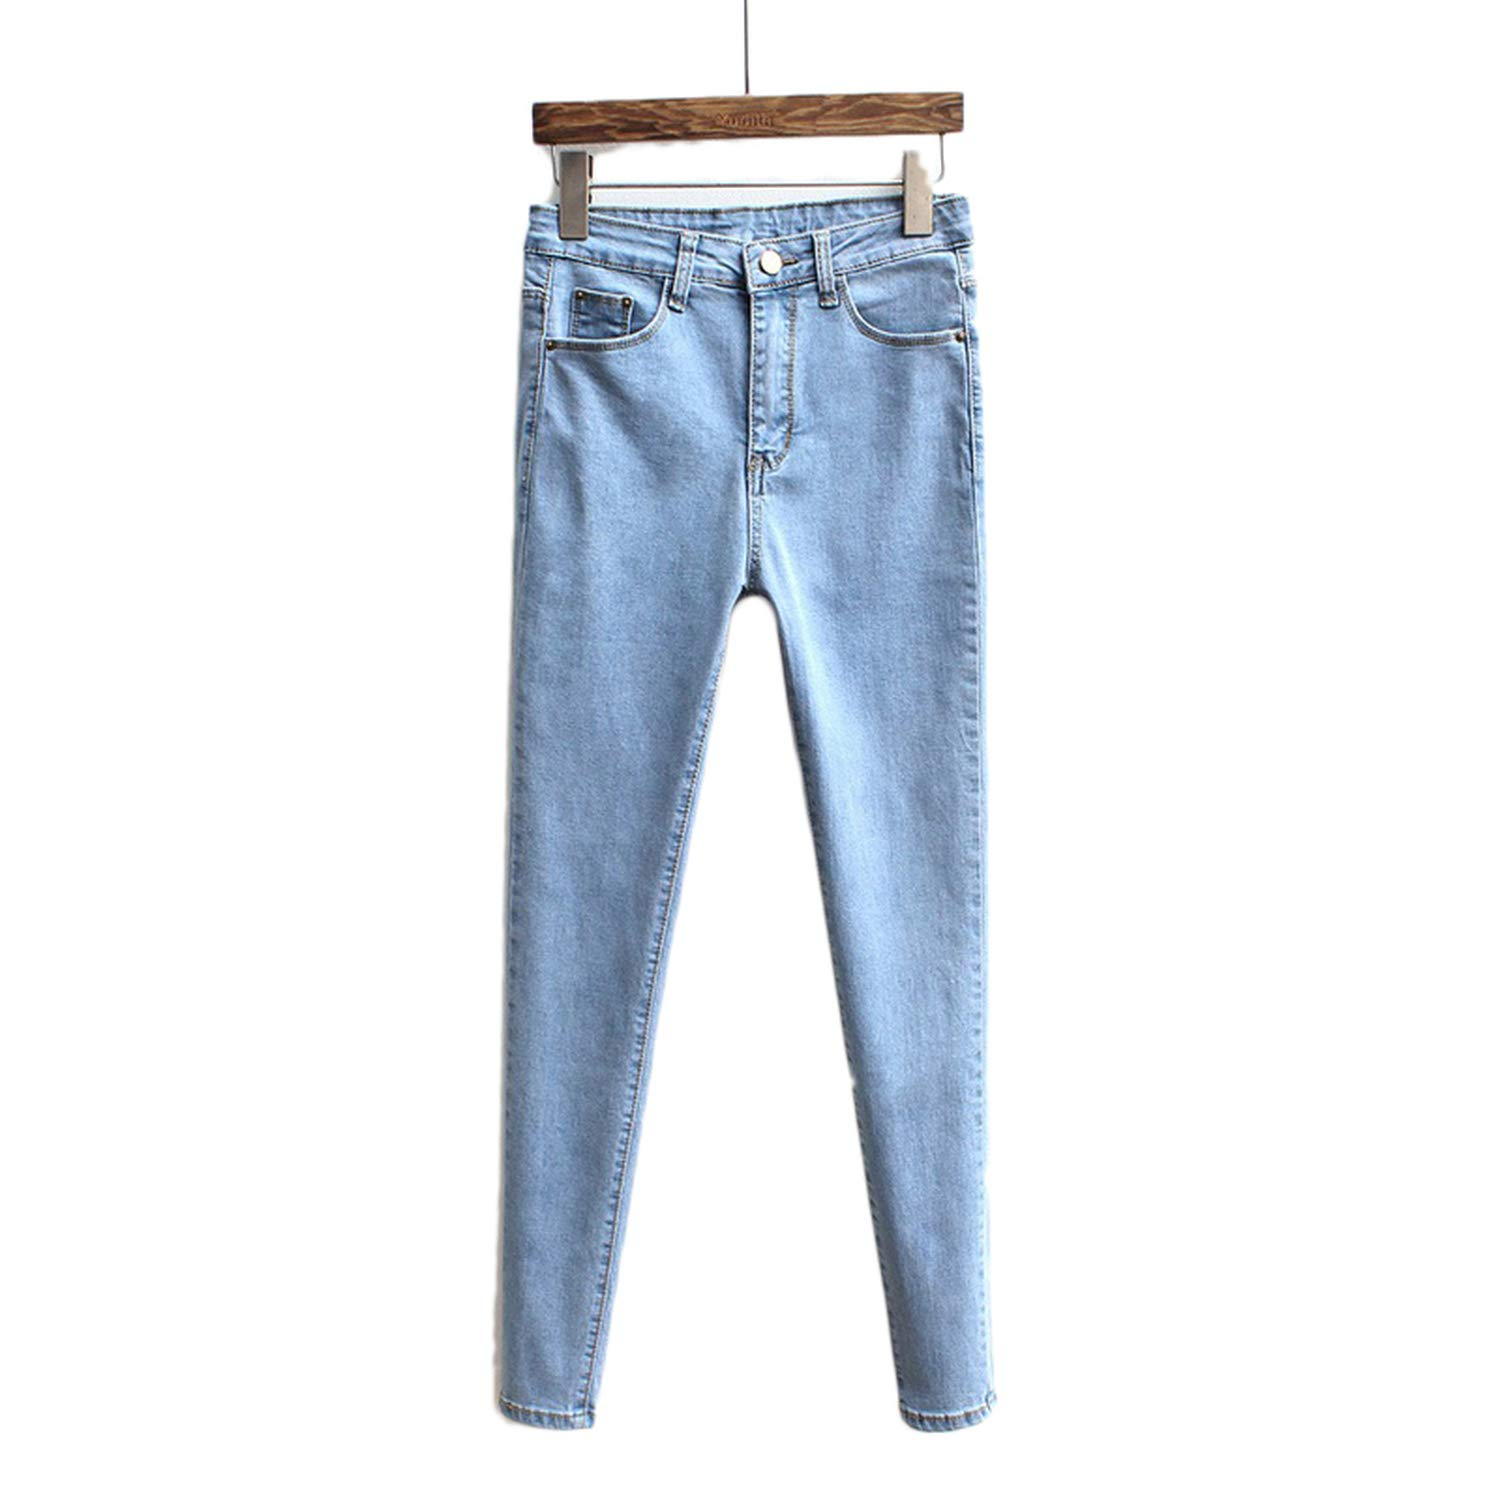 OEMNCD Slim Jeans for Women Skinny High Waist Jeans Woman Blue Denim Pencil Pants